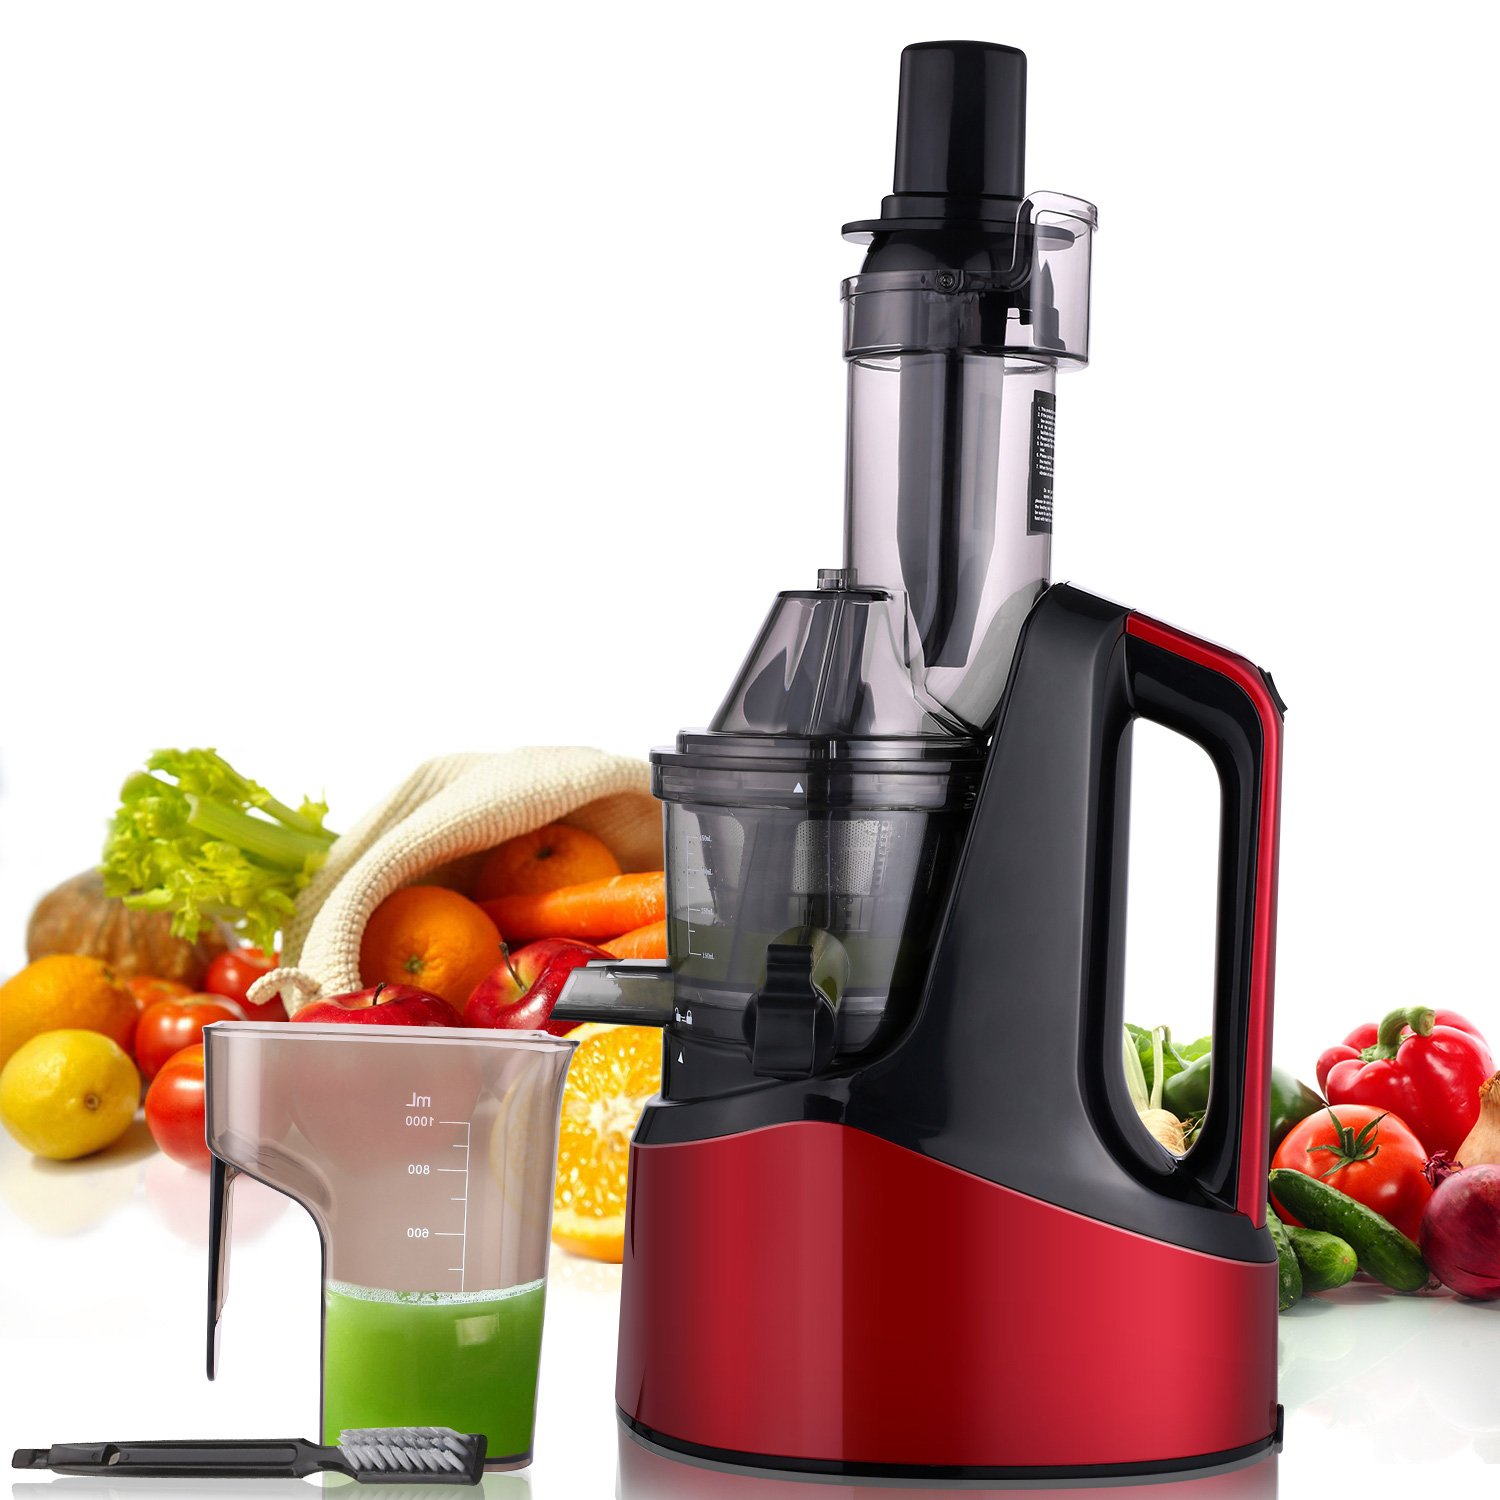 MeyKey Slow Masticating Juicer Wide Chute Reverse Function Cold Press Juicer Easy Extract Fruit Vegetable Juice